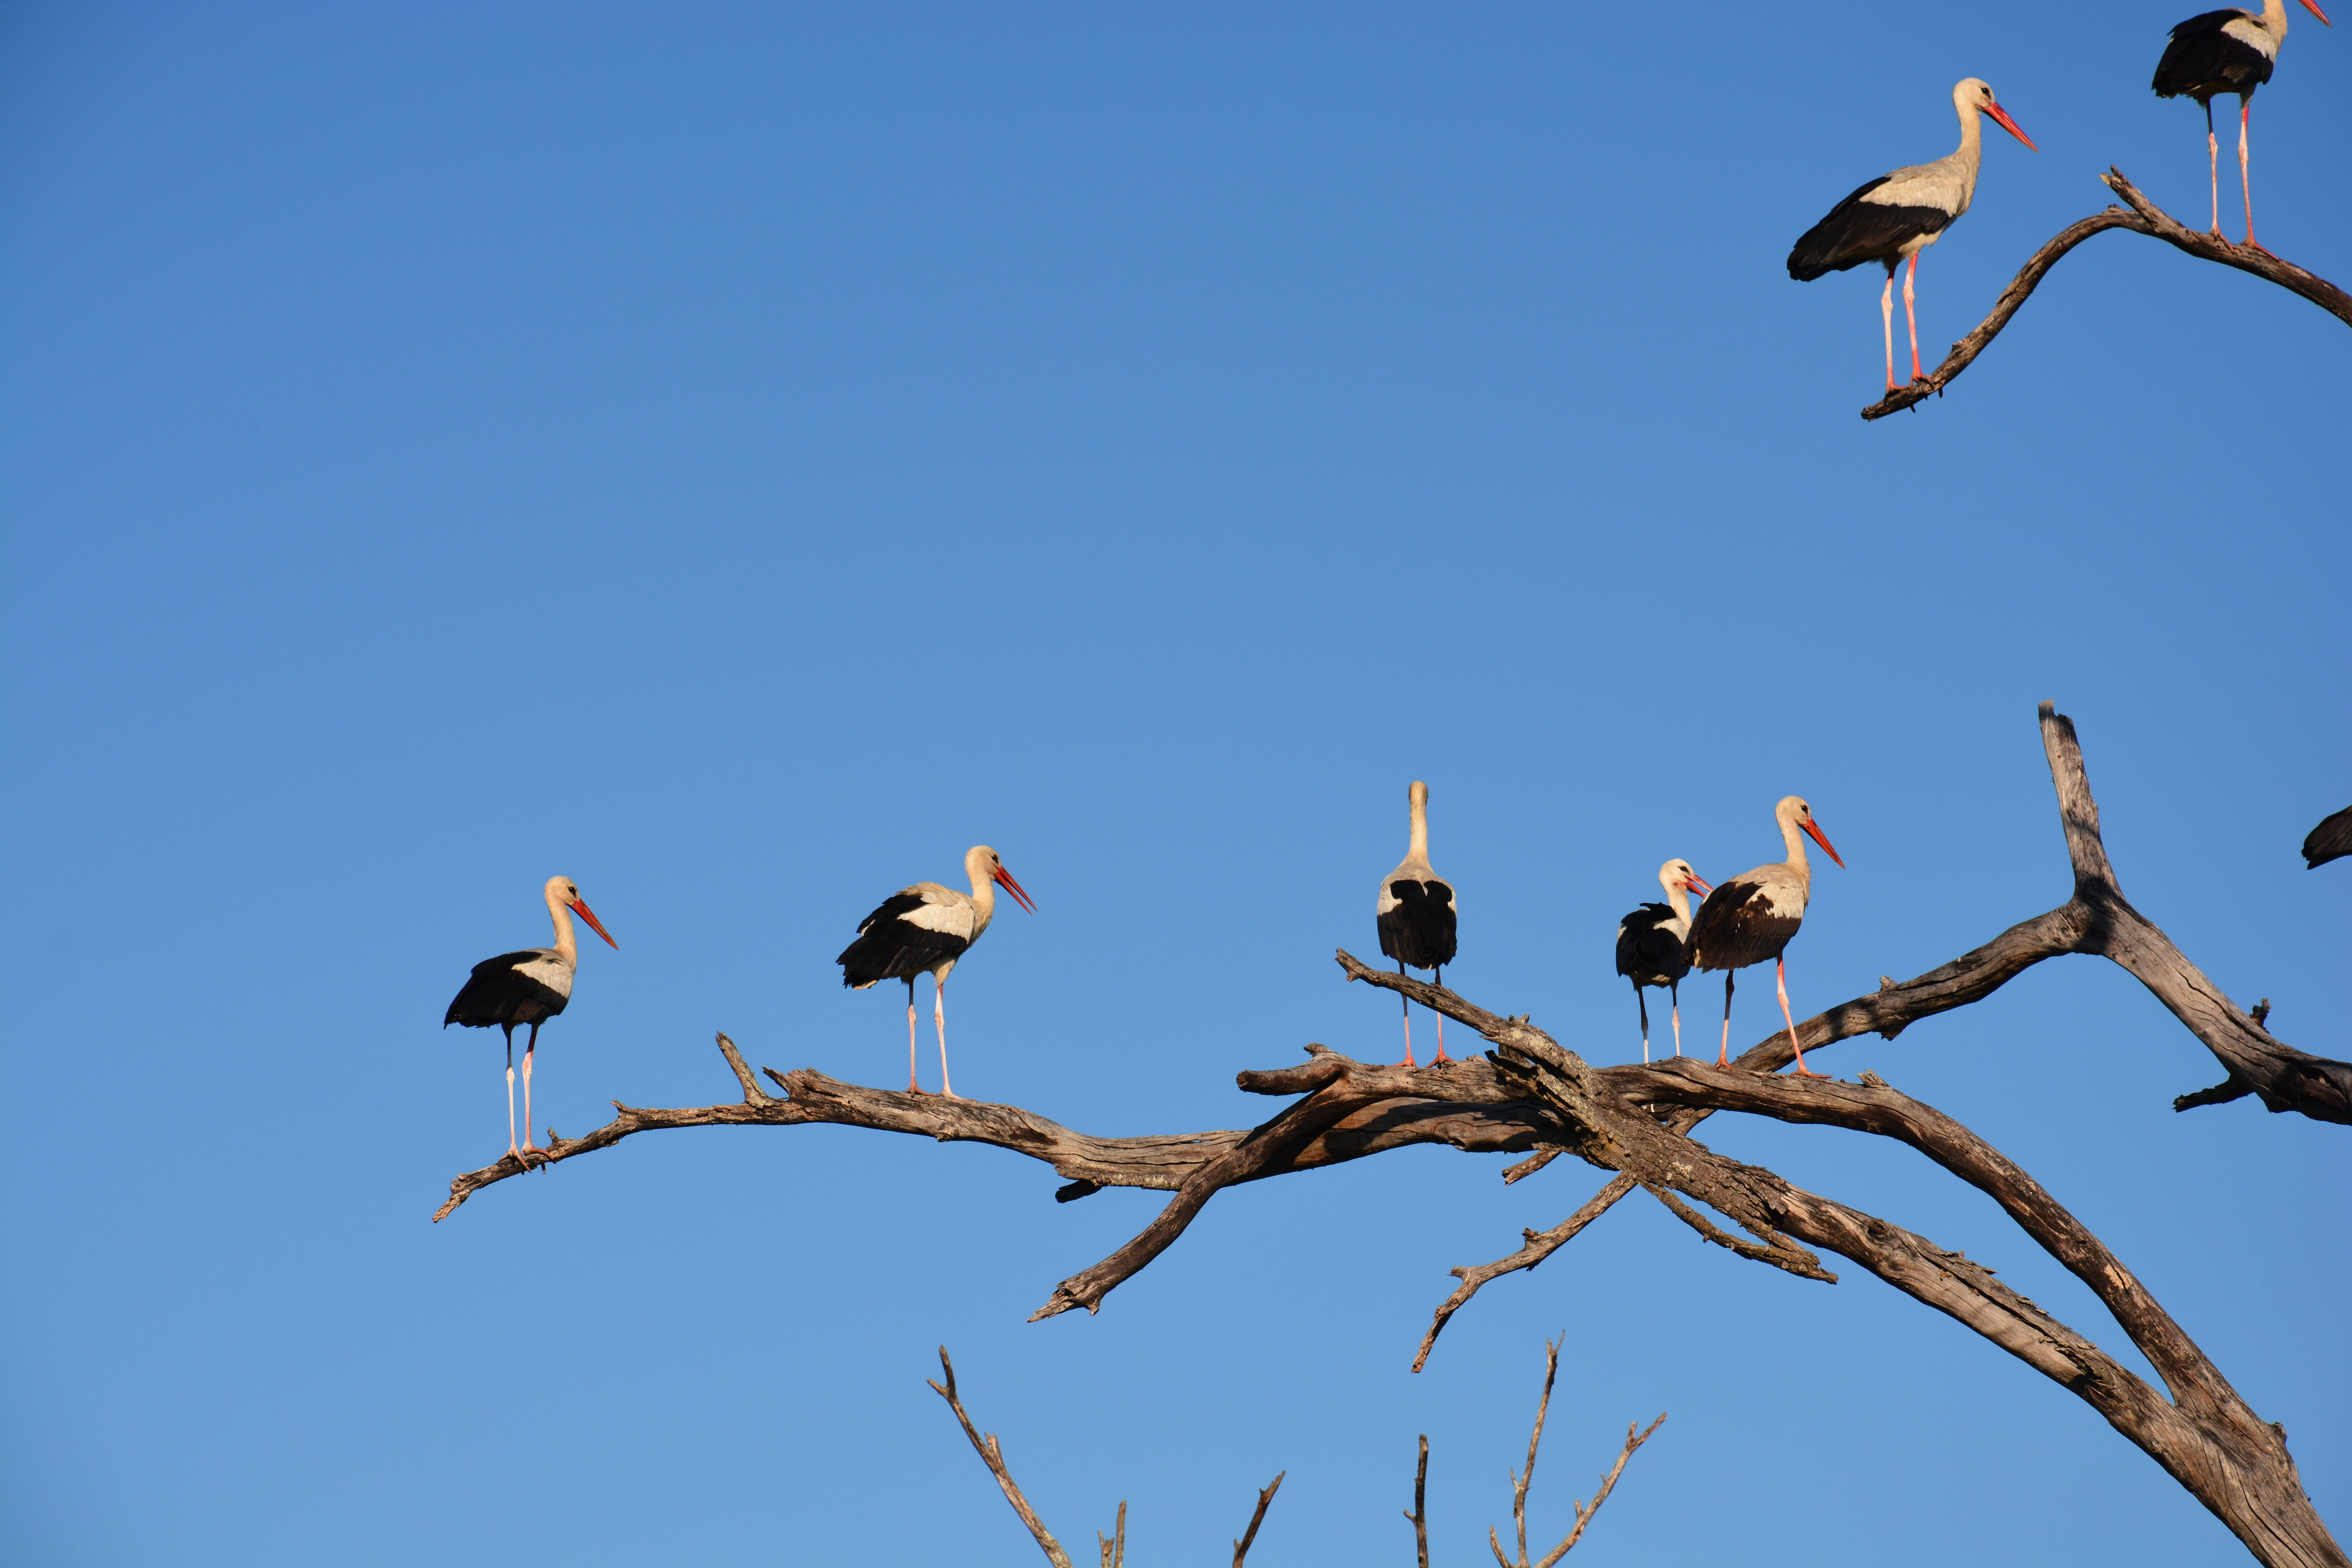 White and Black Long Beaked Birds on Brown Tree Branch